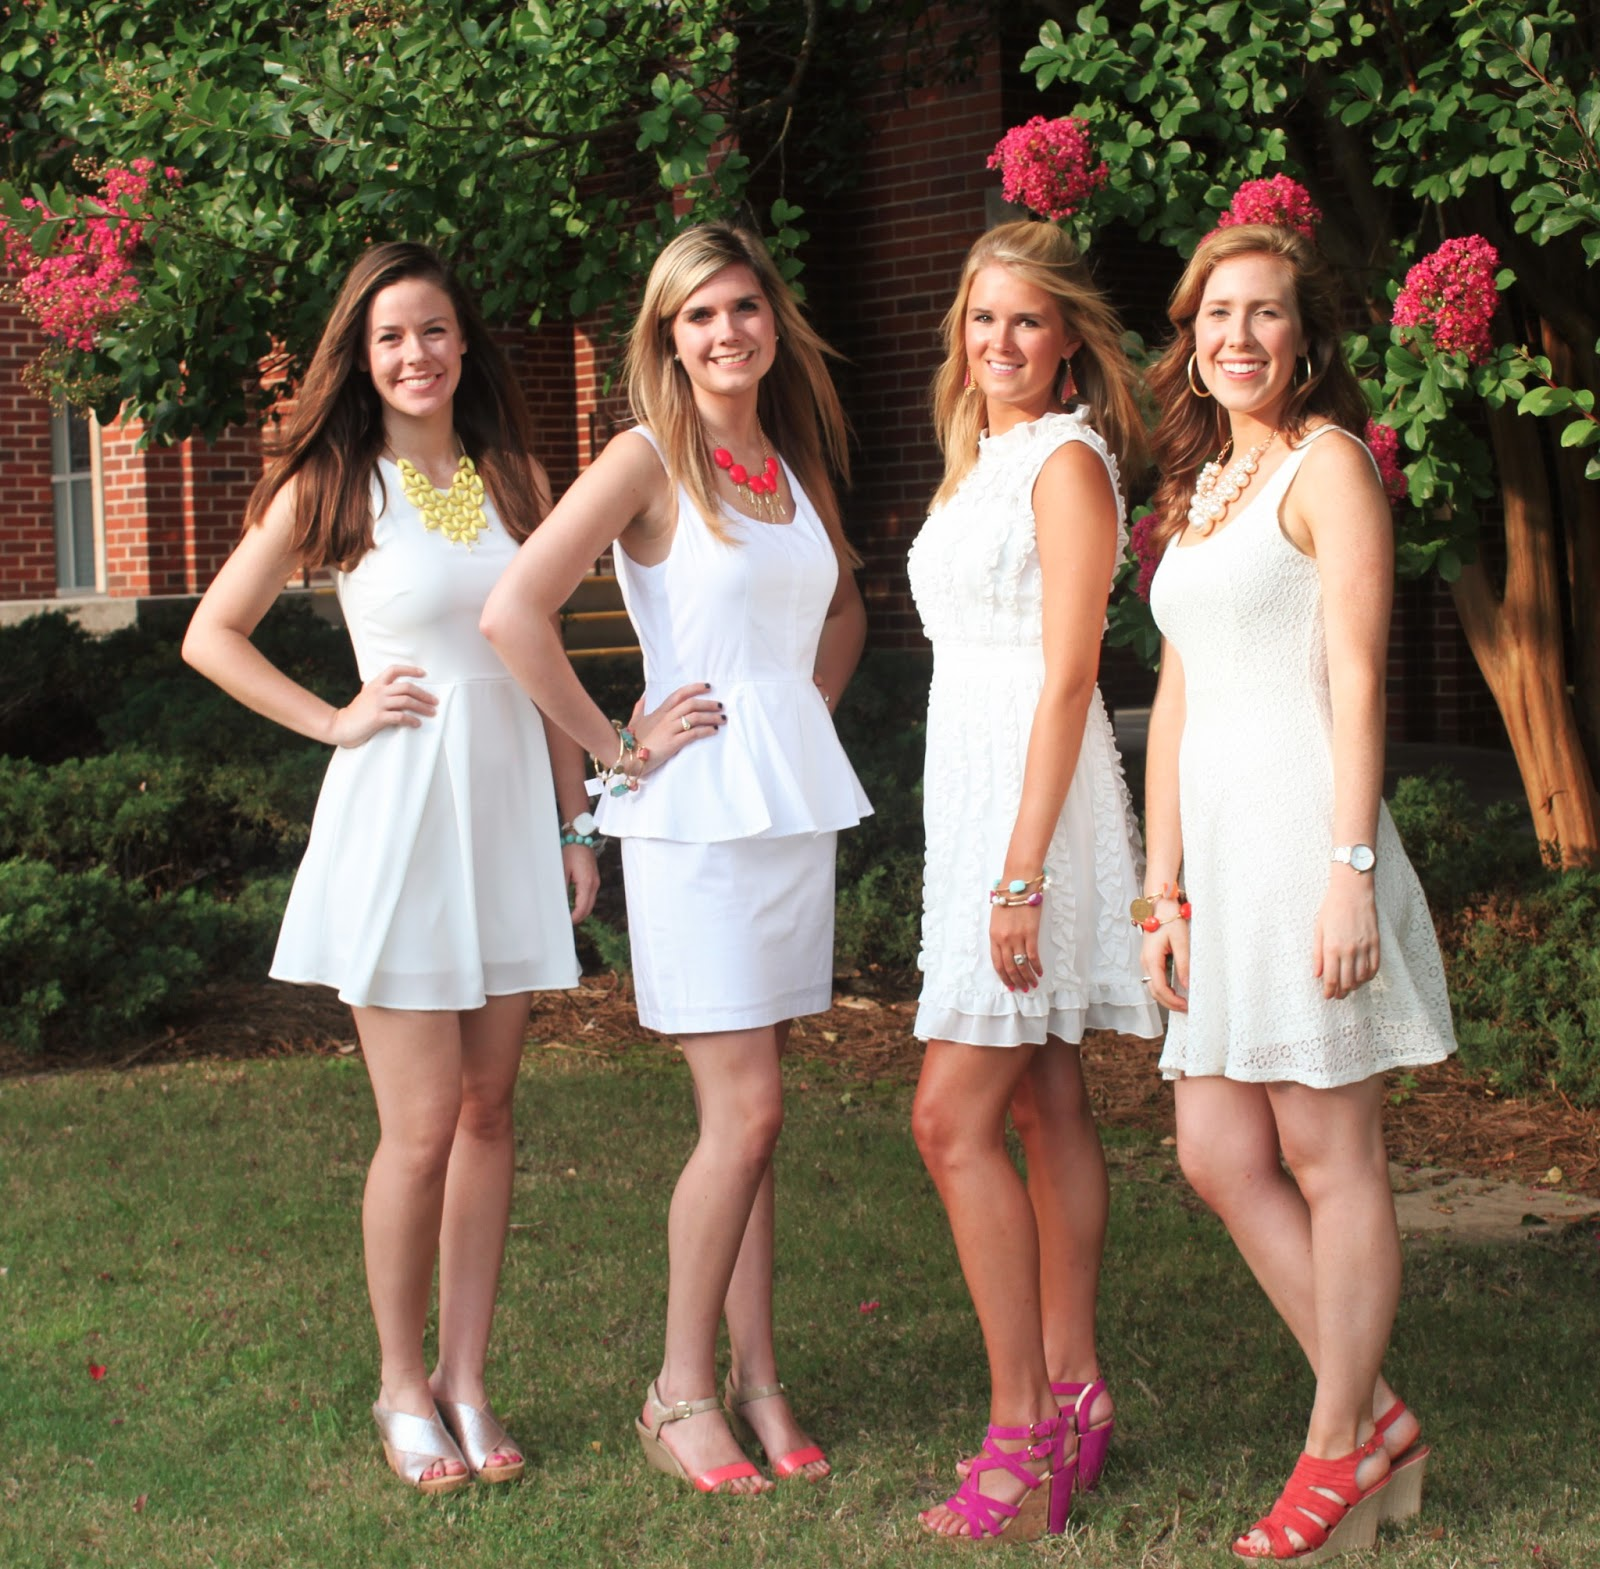 Recruitment rundown advice from the vignettes girls